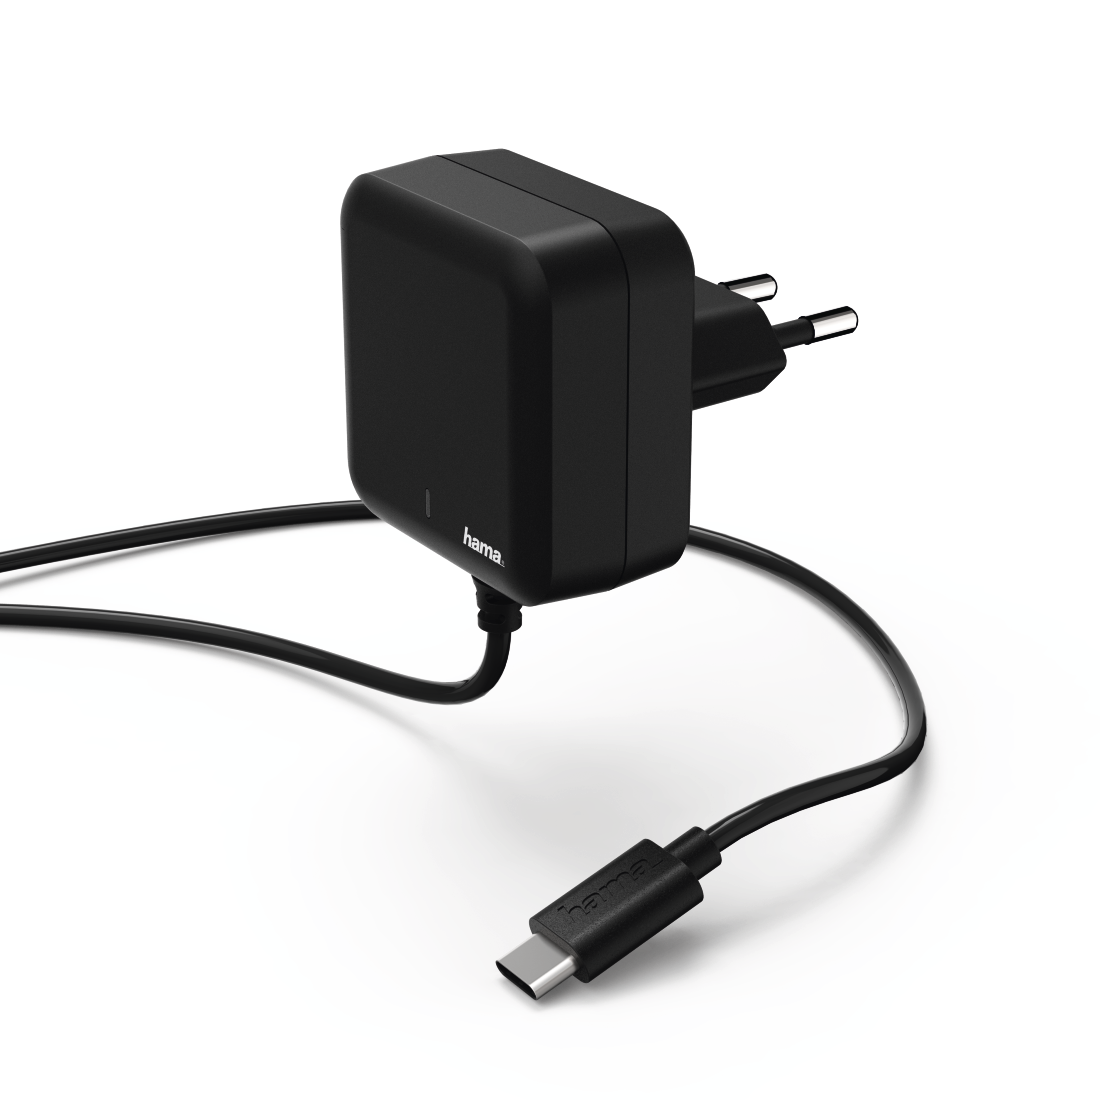 abx High-Res Image - Hama, Chargeur, USB Type-C, Power Delivery (PD), 3 A, noir